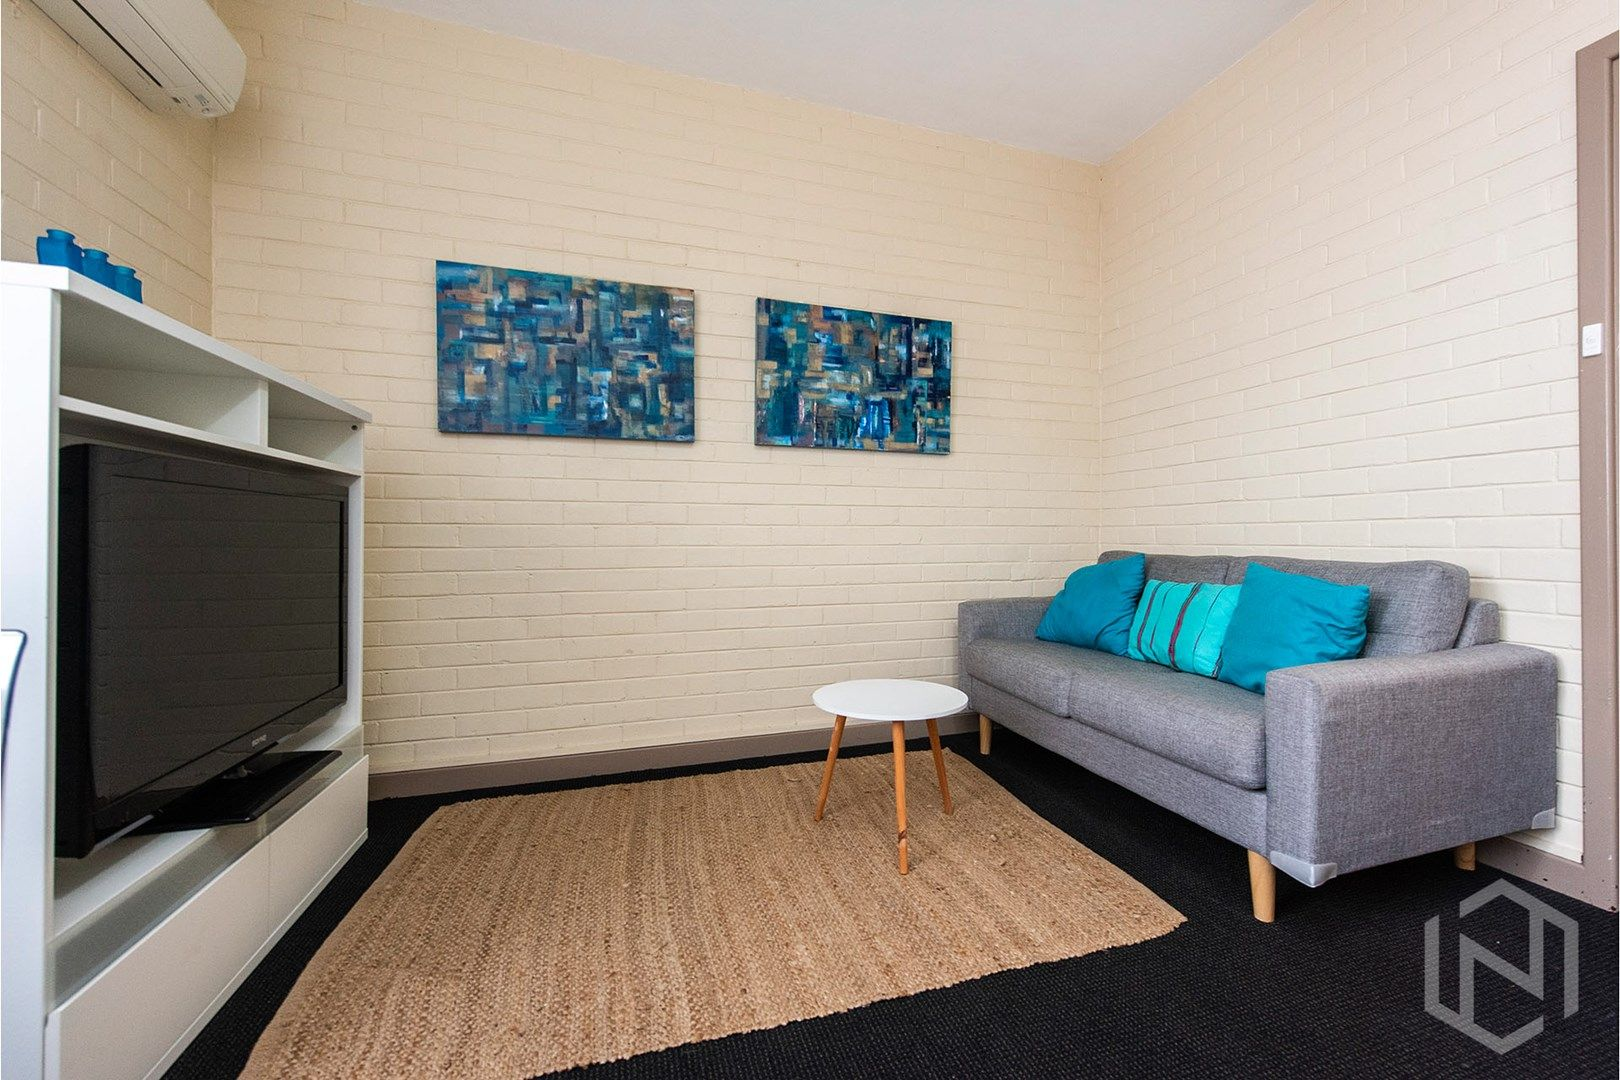 1 bedrooms Apartment / Unit / Flat in 21/45 Adelaide Tce EAST PERTH WA, 6004